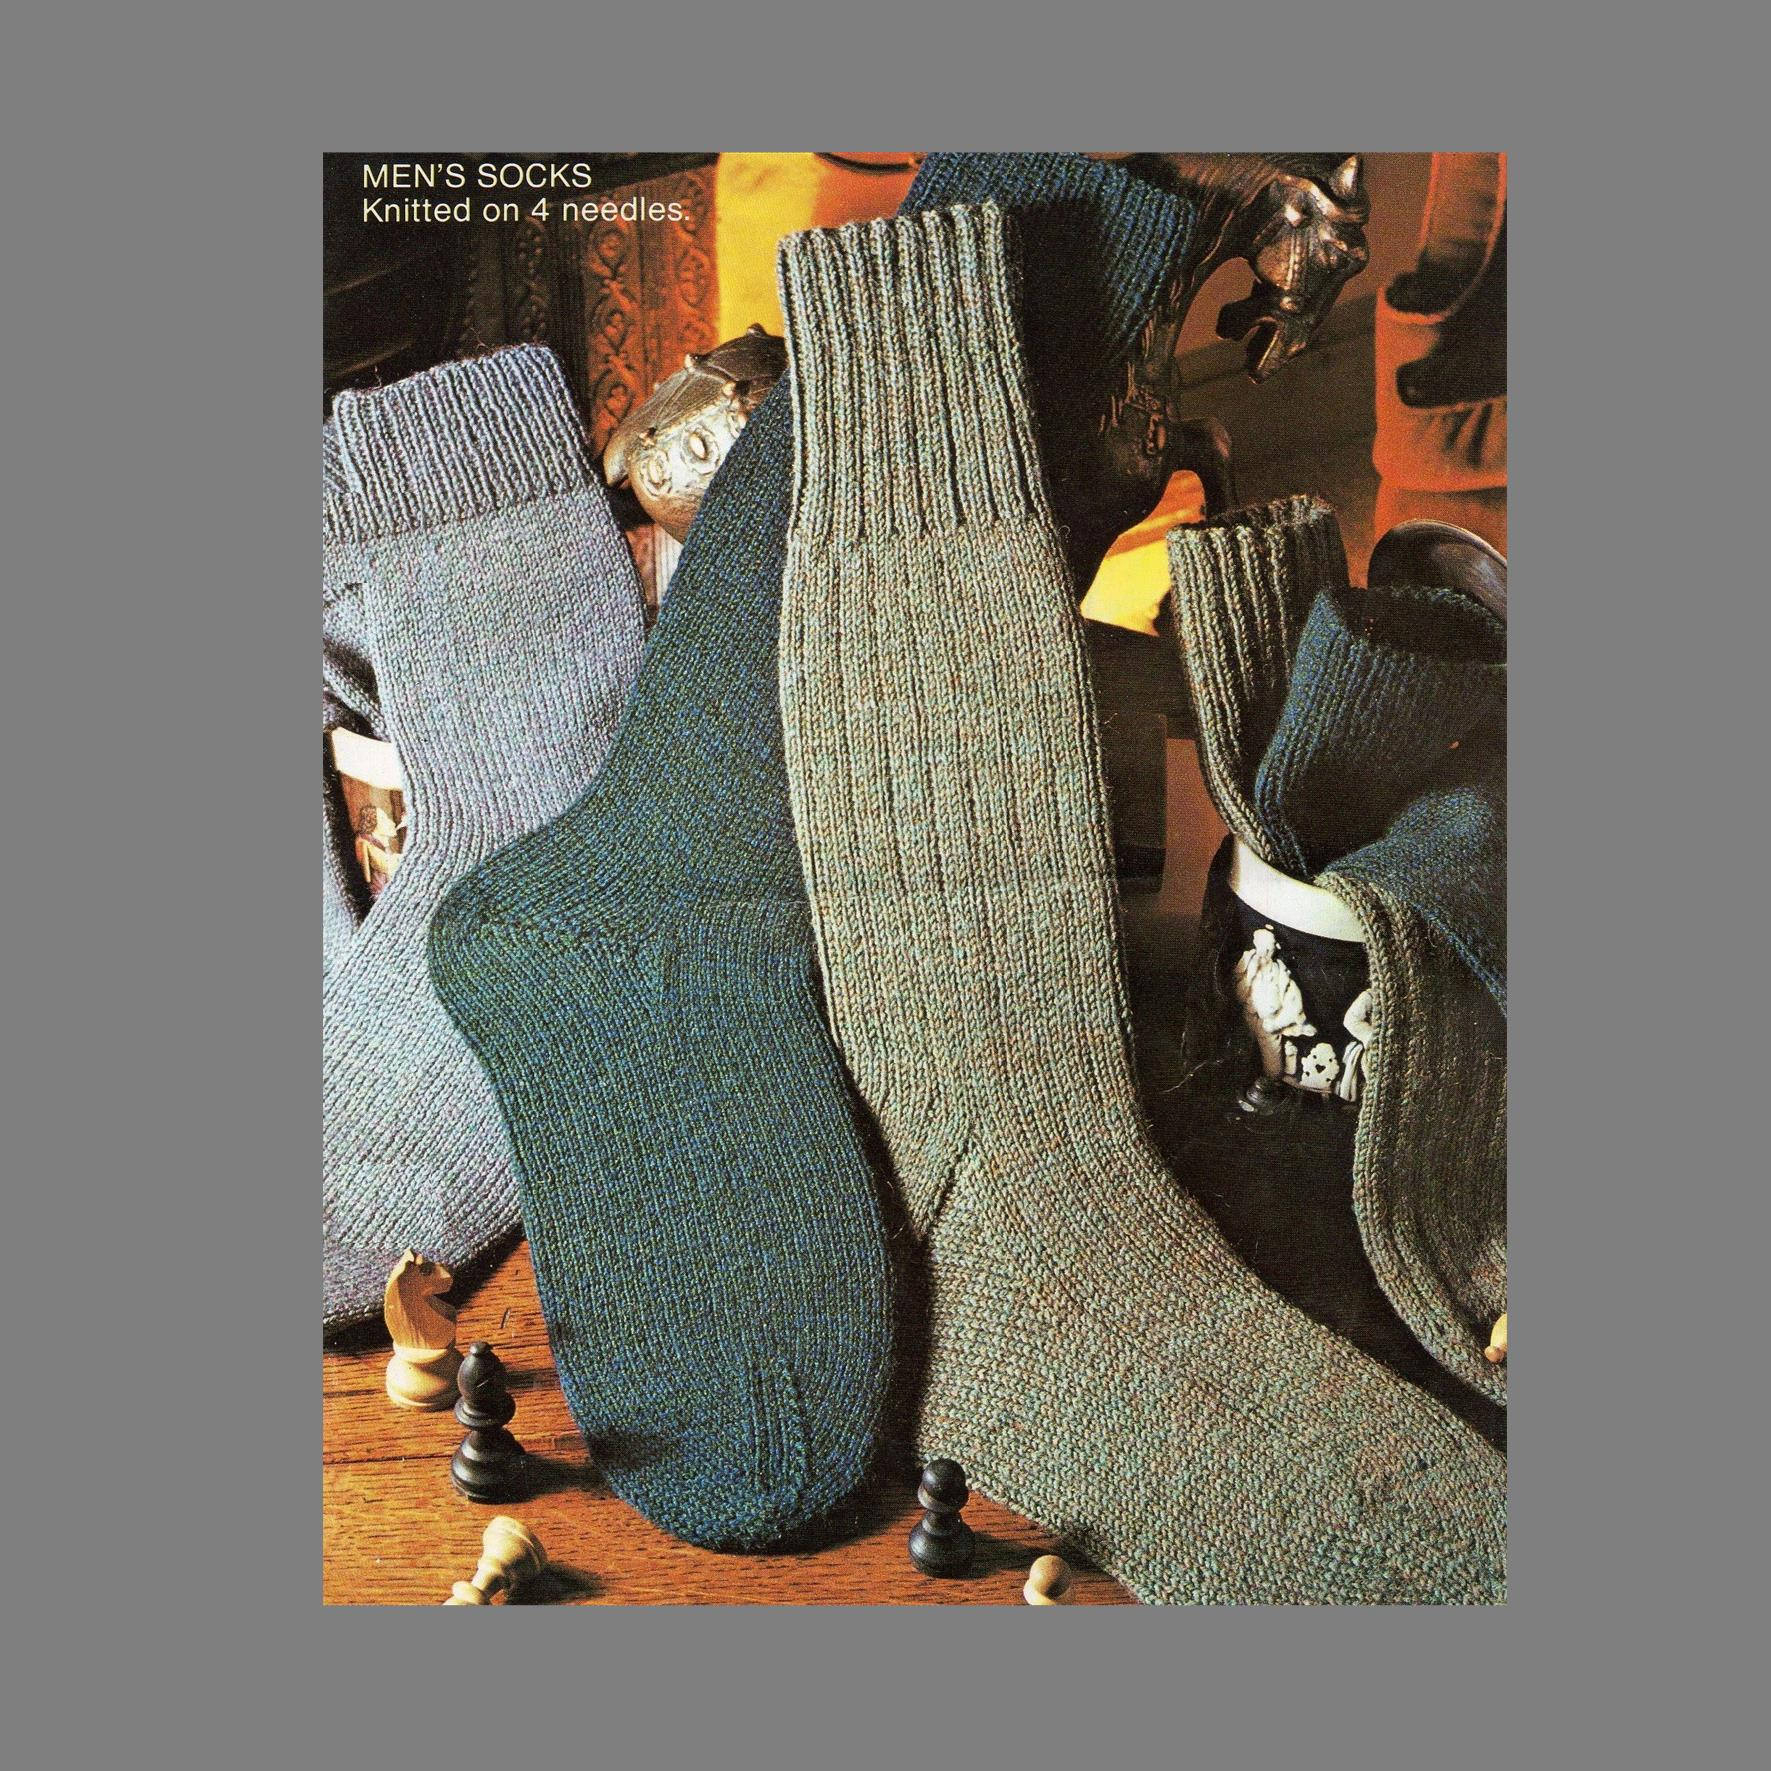 Free Knitting Patterns For Socks On Four Needles Pdf Sock Pattern 4 Ply Socks In Three Styles Using Four Needles Mens Socks Knitting Pattern Pdf Instant Download Post Free Patterns